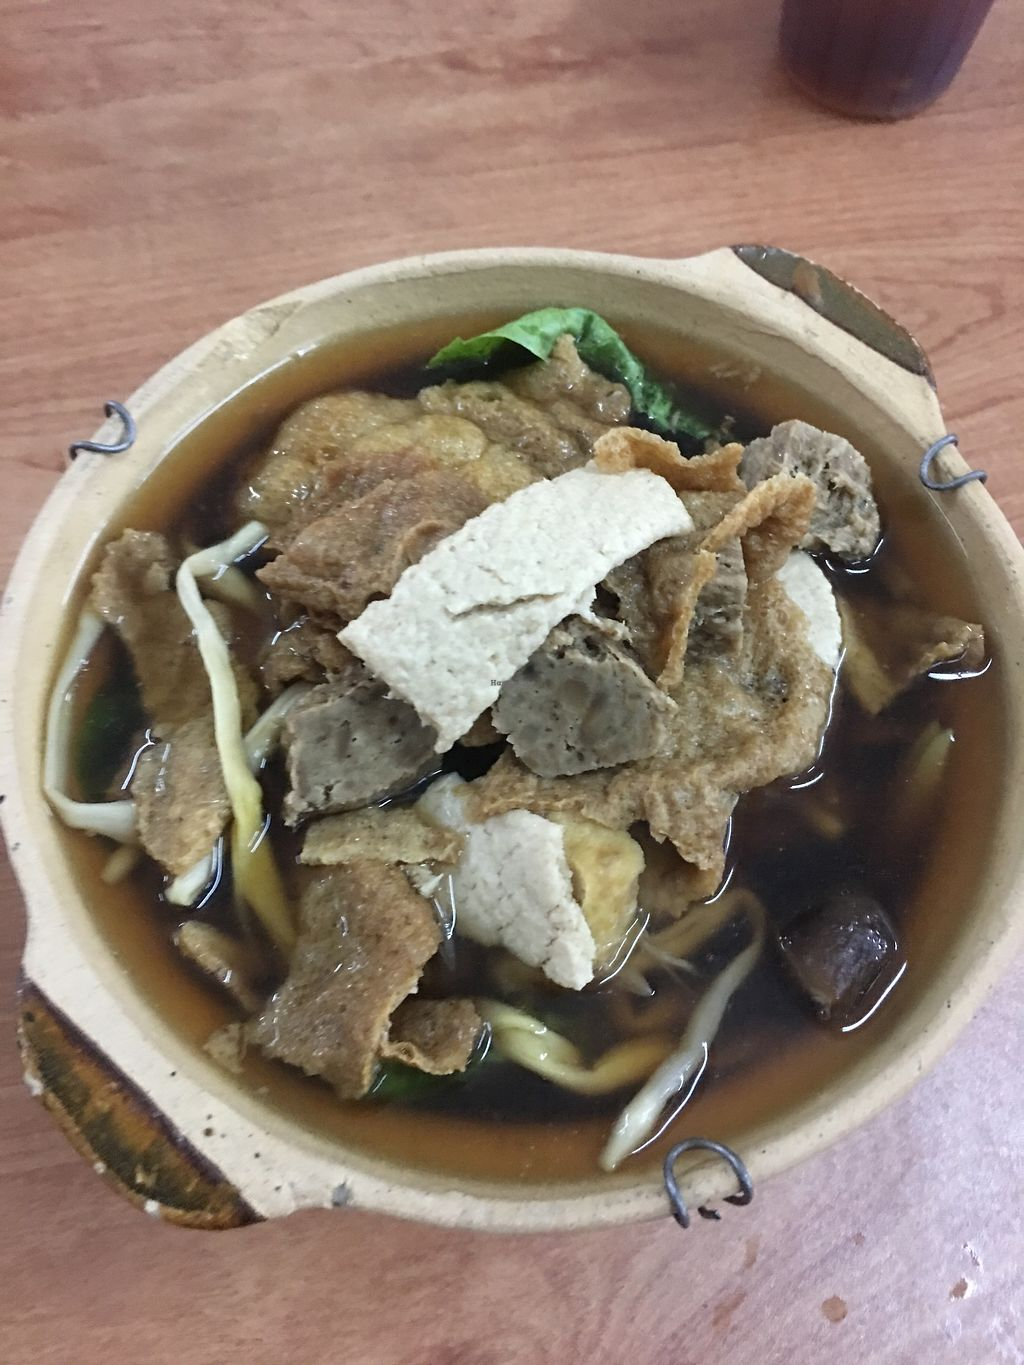 """Photo of Ming Yuan Vegetarian  by <a href=""""/members/profile/LohCheeWah"""">LohCheeWah</a> <br/>最喜欢这道菜 <br/> September 1, 2017  - <a href='/contact/abuse/image/87457/299570'>Report</a>"""